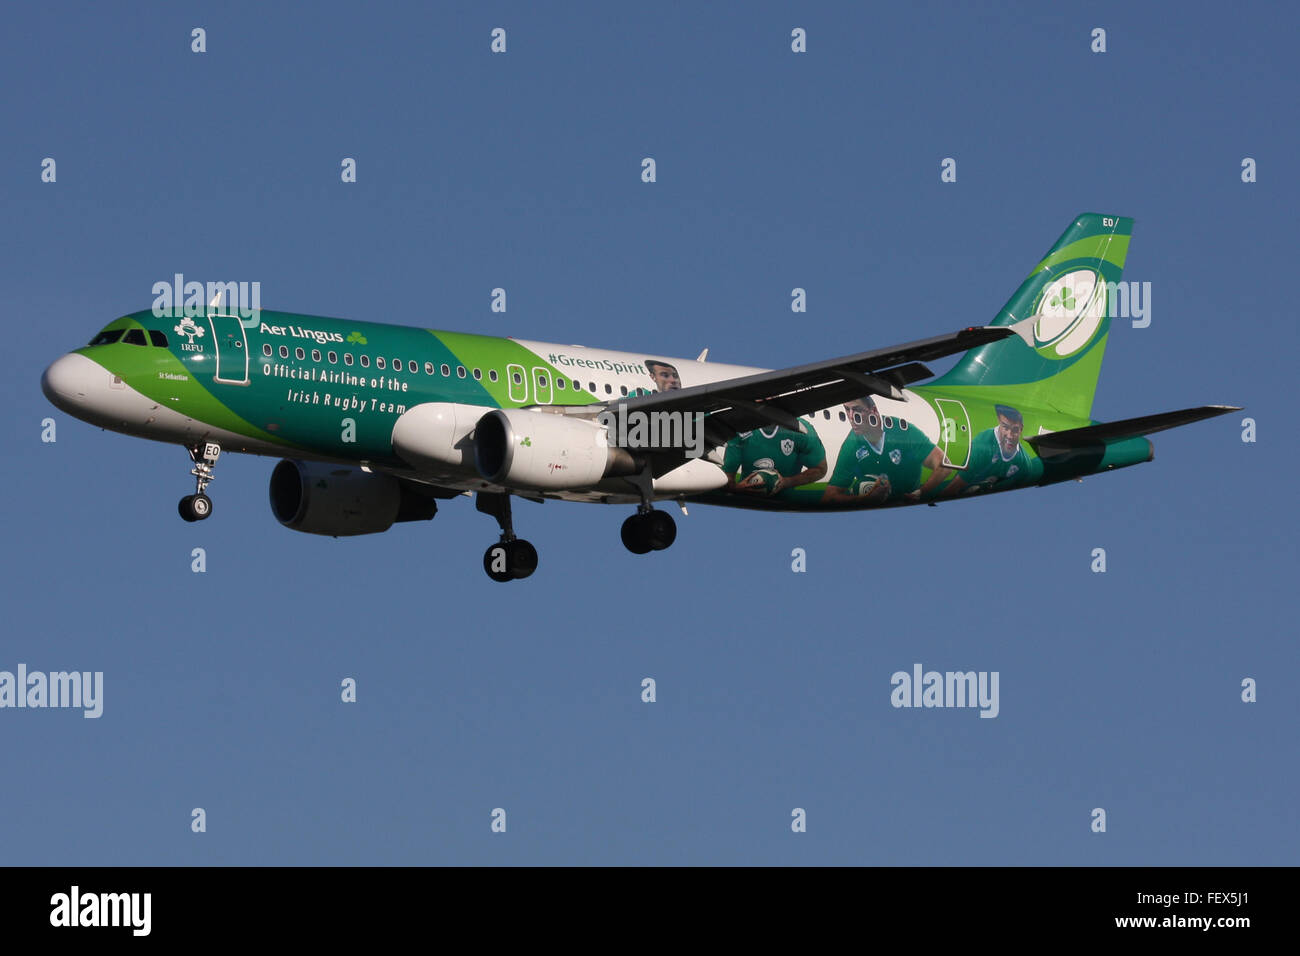 AER LINGUS A320 GREEN SPIRIT RUGBY TEAM EIRE IRELAND - Stock Image